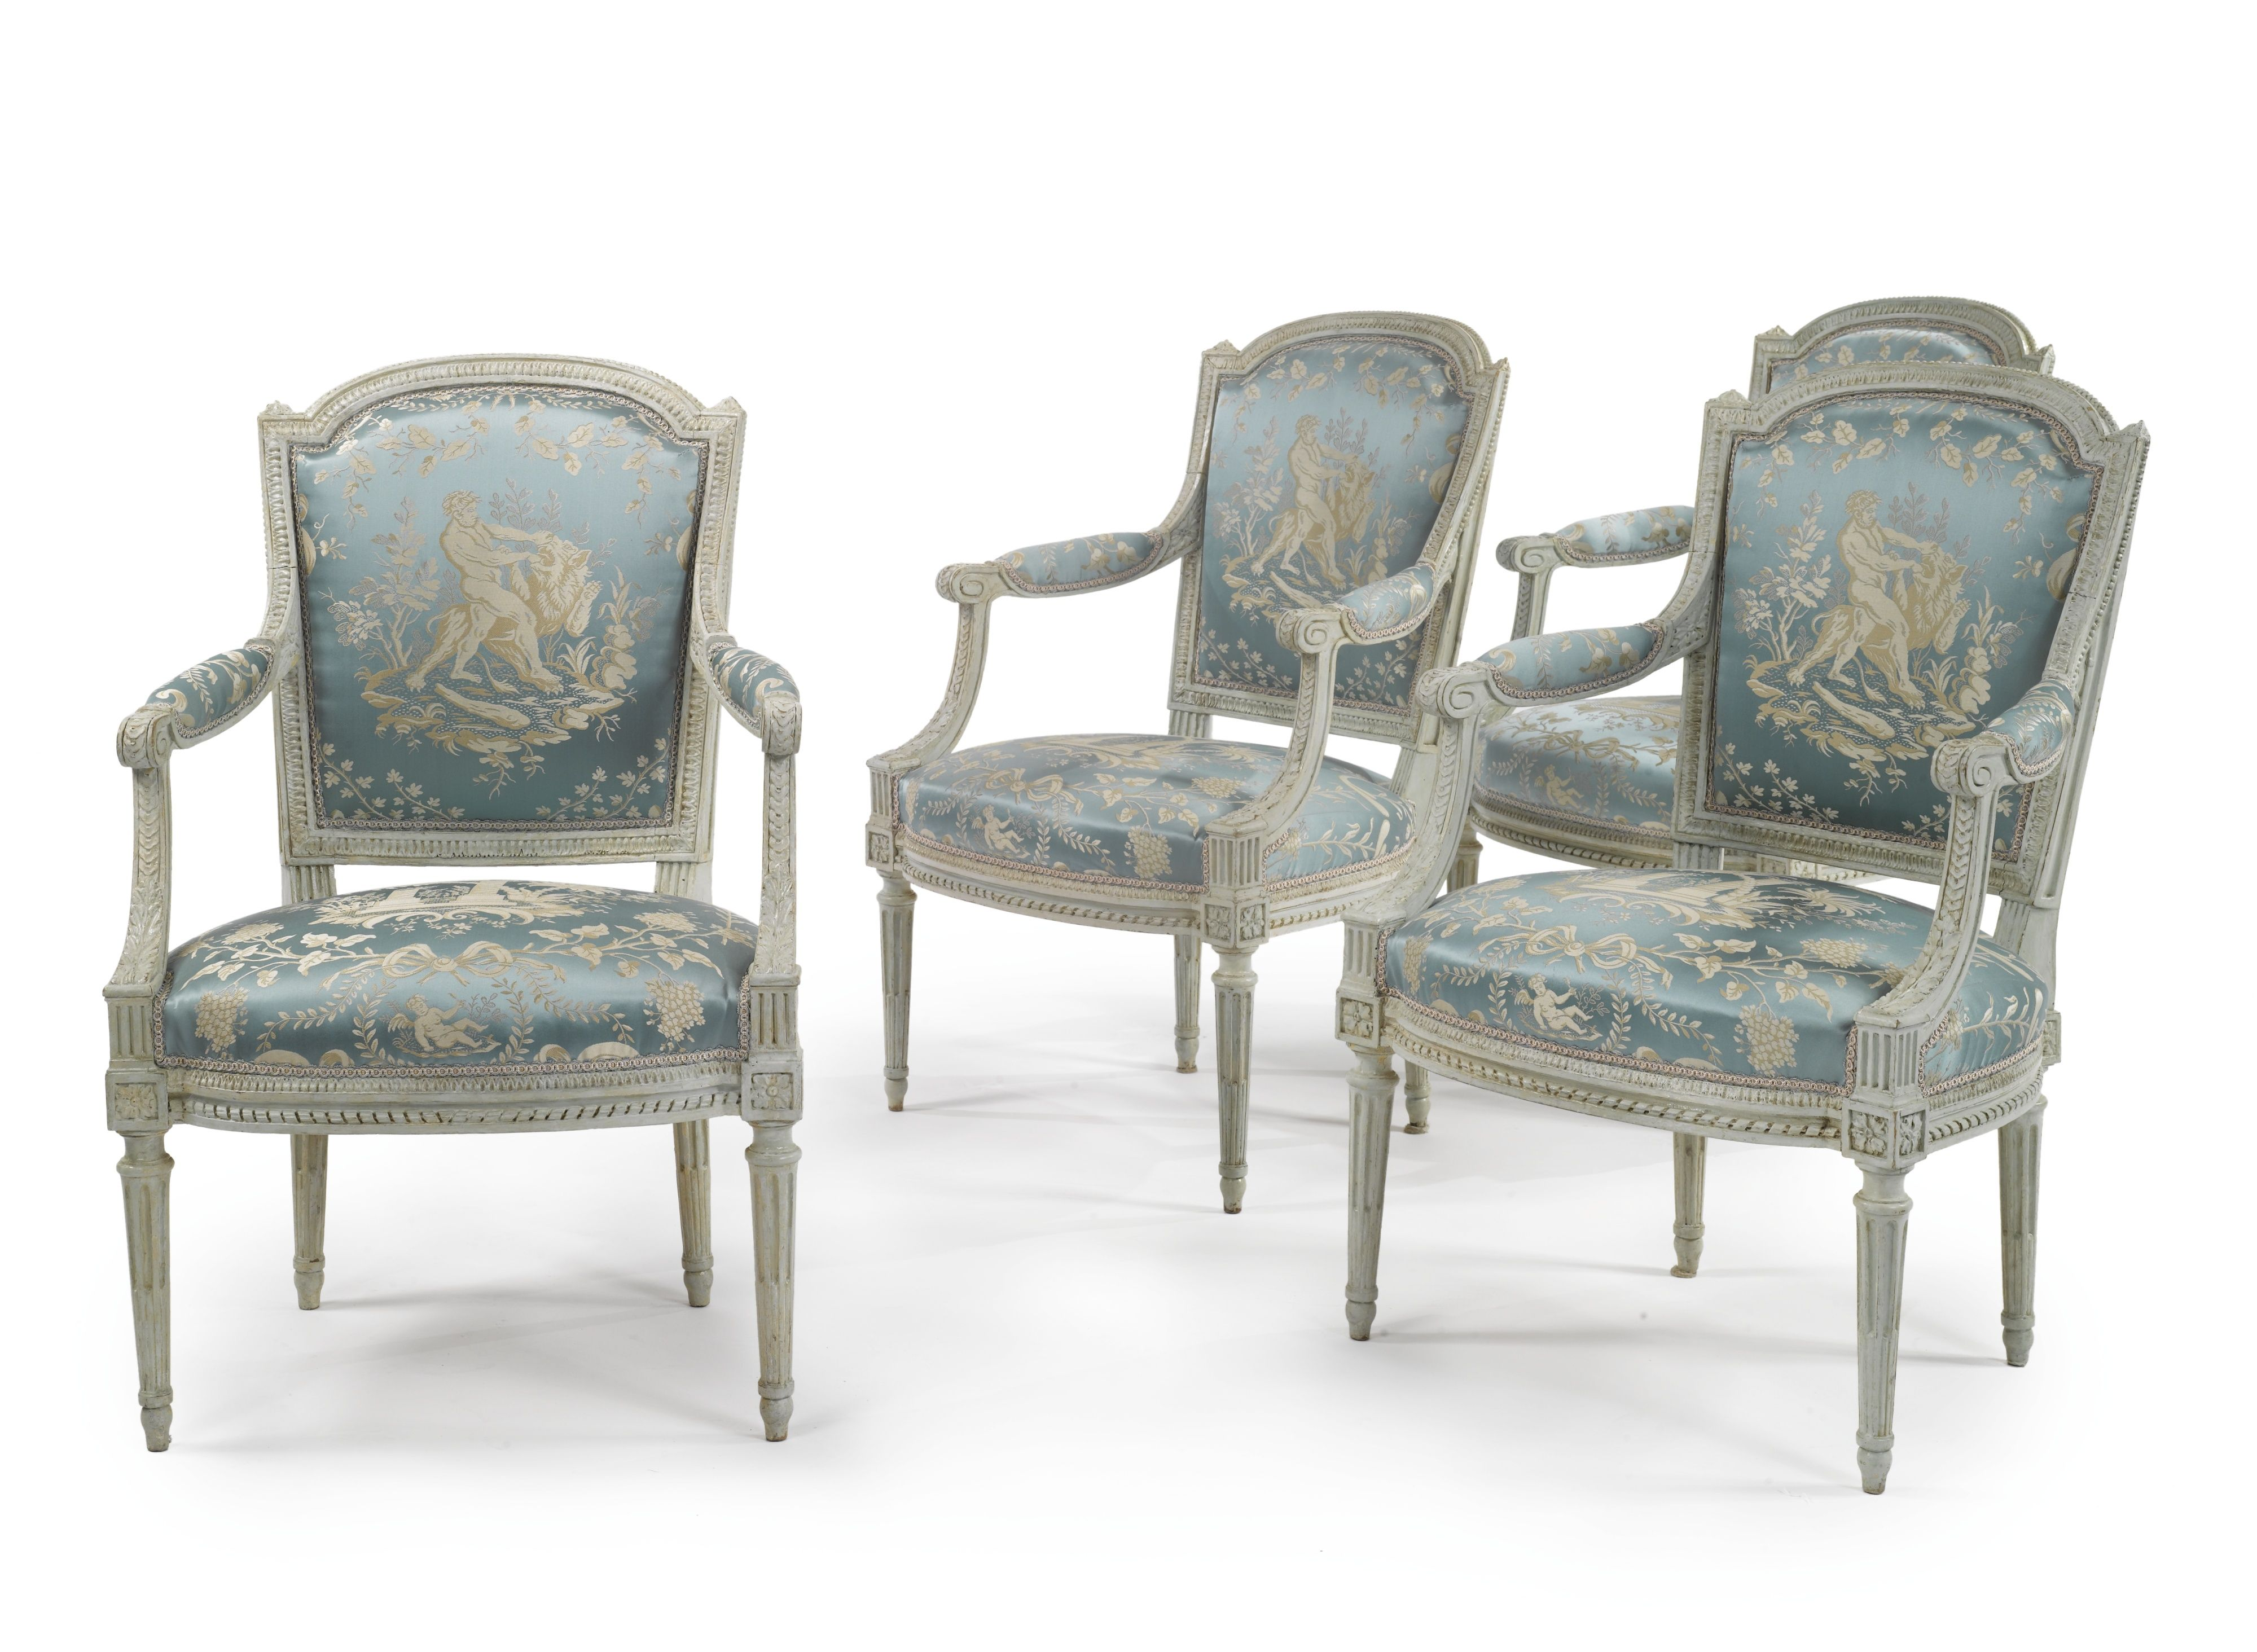 A SET OF FOUR LOUIS XVI WHITE-PAINTED AND CARVED FAUTEUILS CIRCA 1785 height 35 3/4 in. Estimate  20,000 — 30,000  USD  LOT SOLD. 25,000 USD